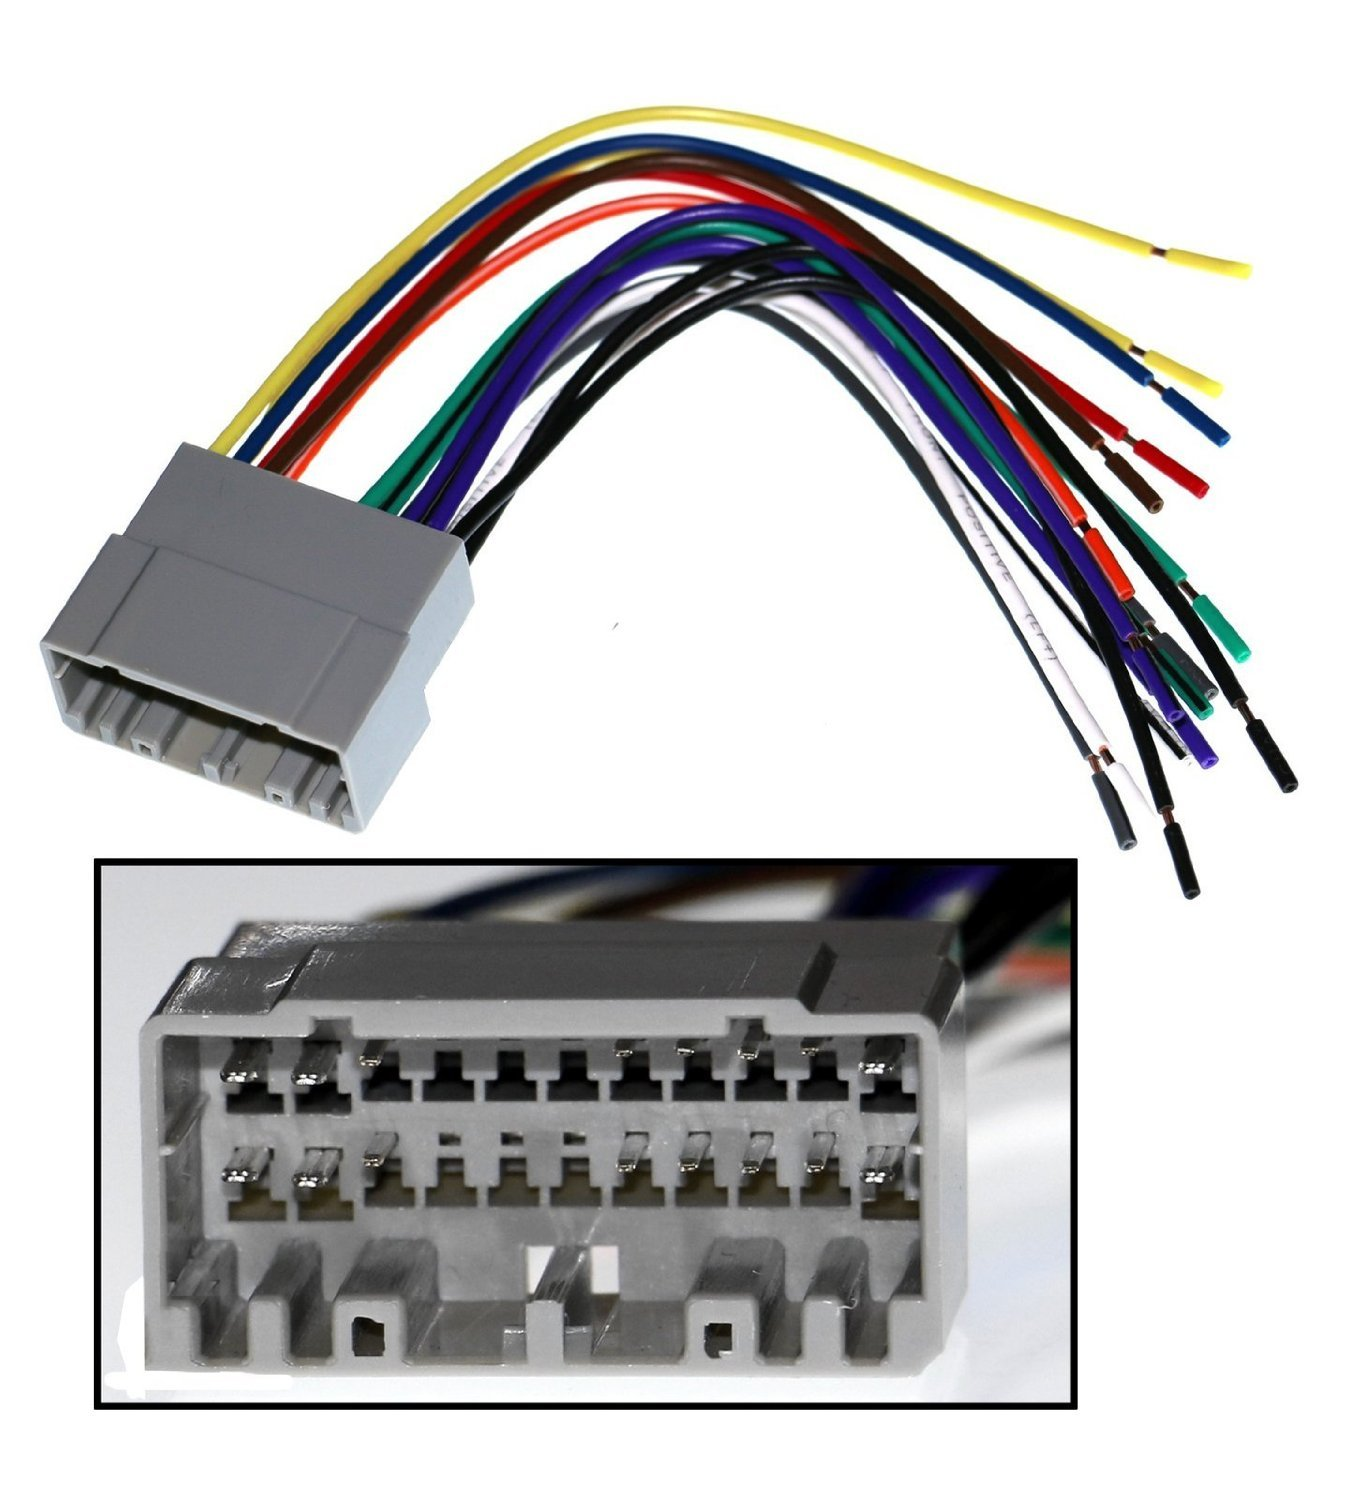 710Q%2BKgavVL._SL1500_ amazon com pioneer car stereo reciever dash install mounting car wiring harness kits at gsmx.co